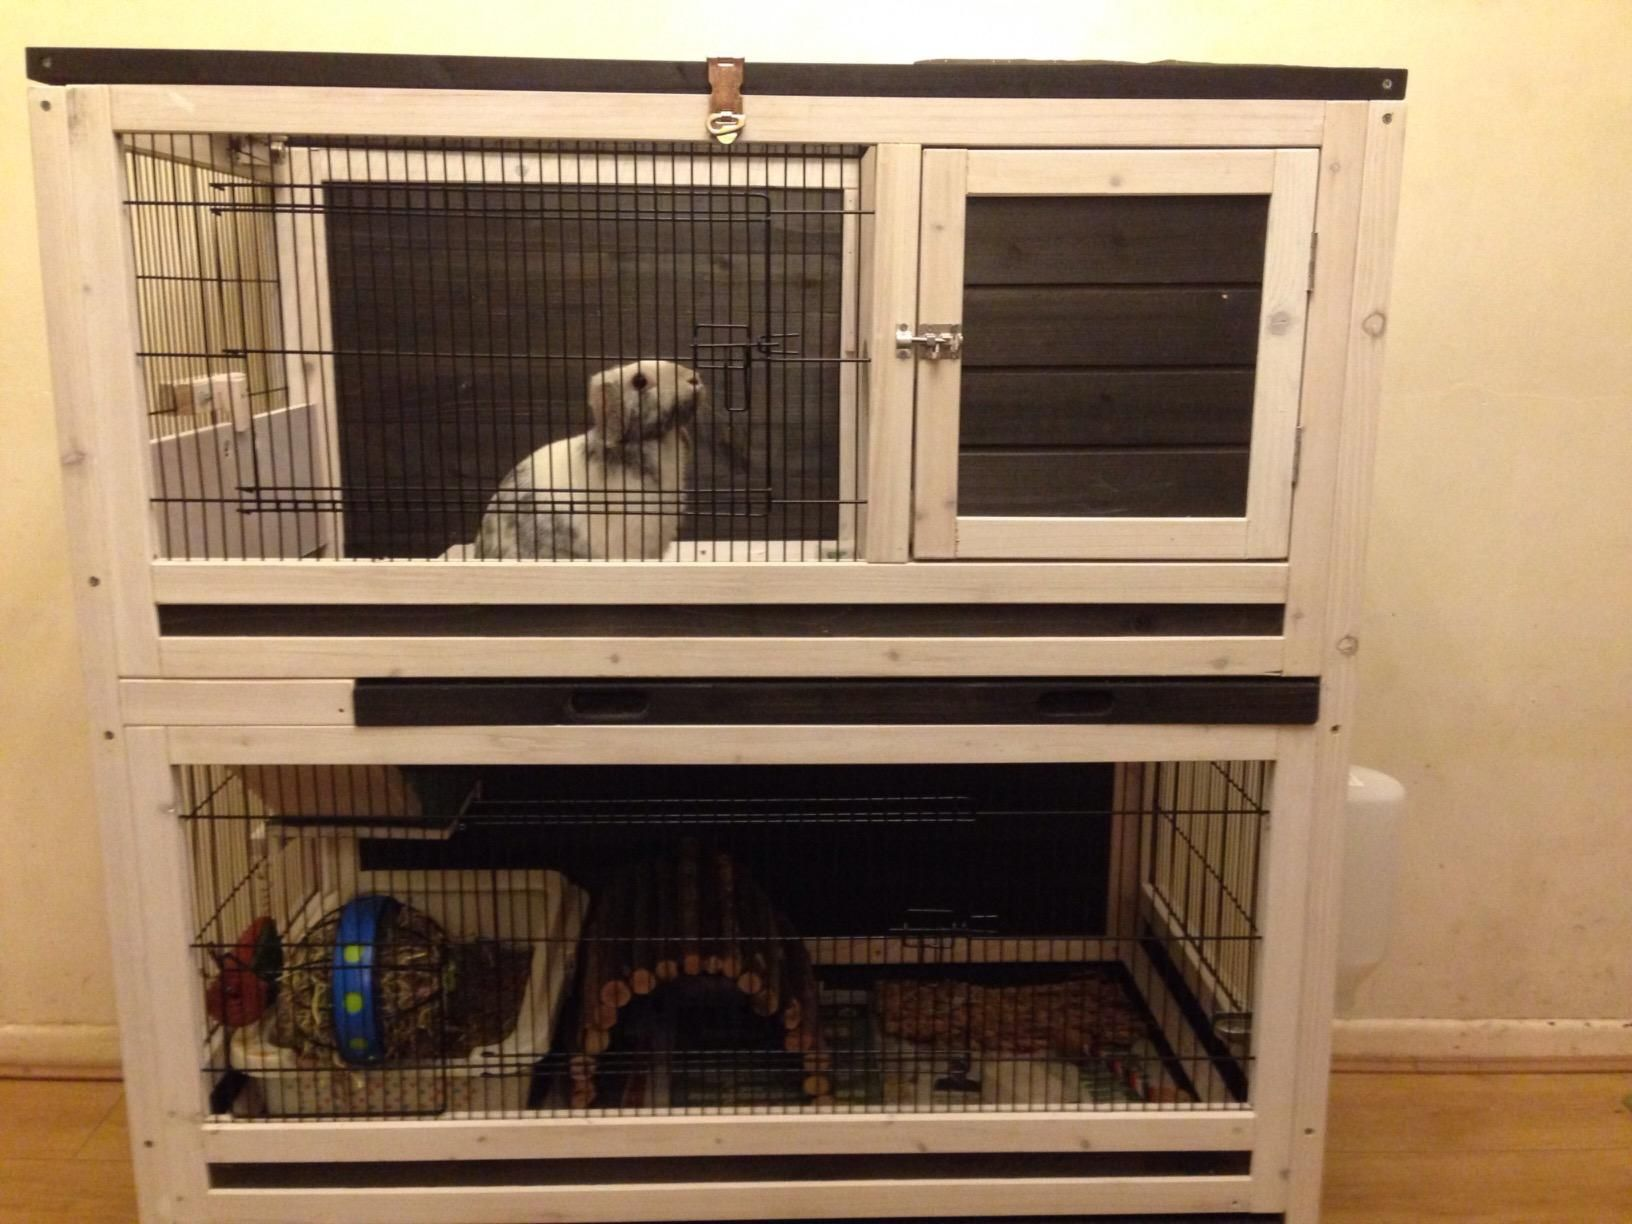 Small Pet Cage Indoor Lounge 2 Y Wooden Rabbits Or Guinea Pigs Hutch Accessible Via Multiple Doors By Sams E Co Uk Supplies